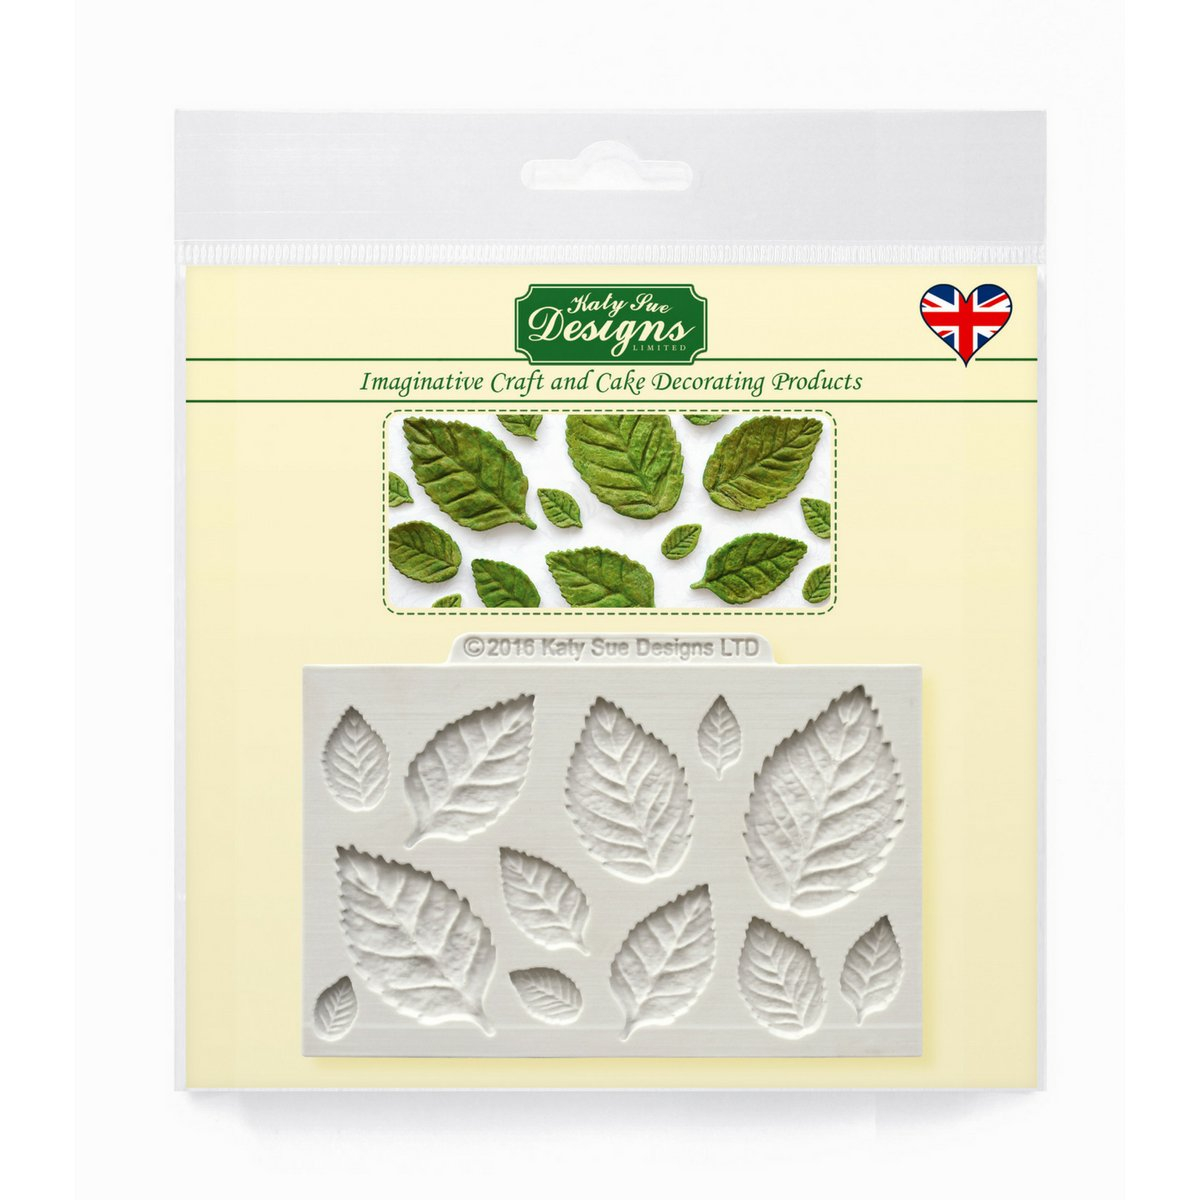 Rose Leaves Silicone Mould for Cake Decorating, Crafts, Cupcakes, Sugarcraft, Candies, Card Making and Clay, Food Safe Approved, Made in the UK